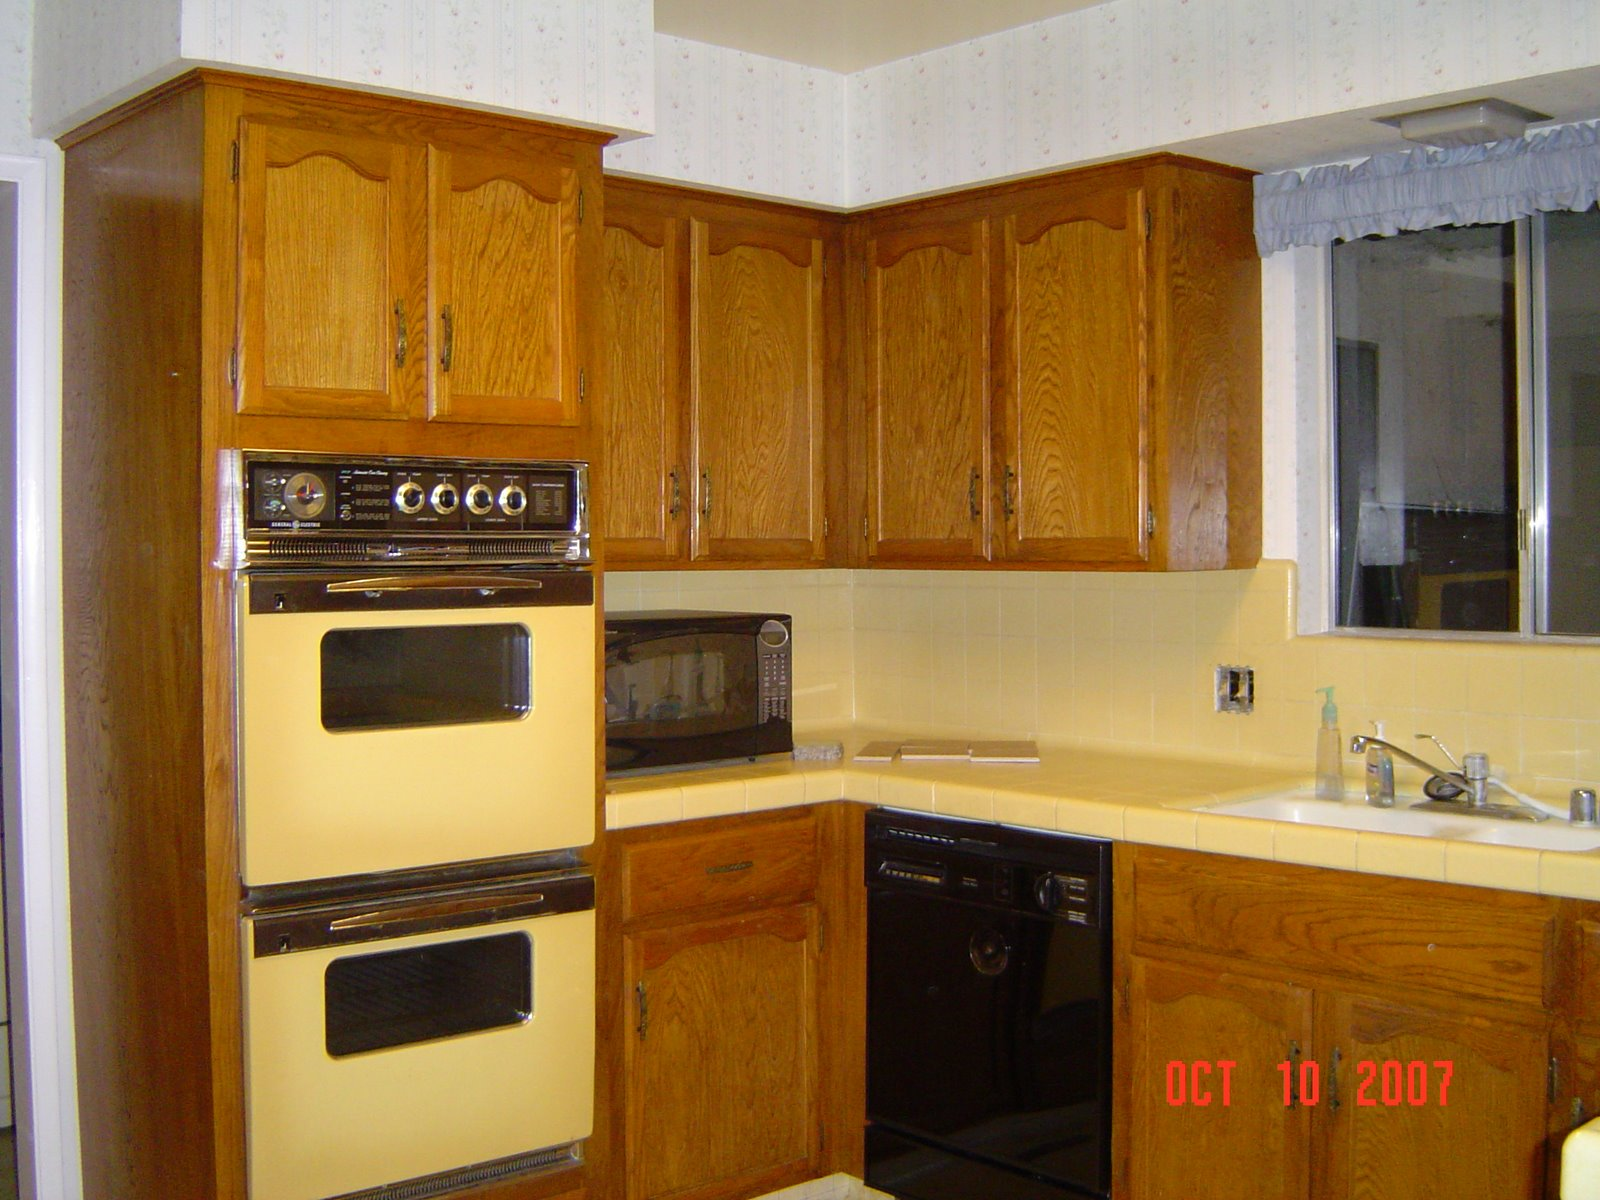 70s style kitchen home design and decor reviews for 70s style kitchen cabinets